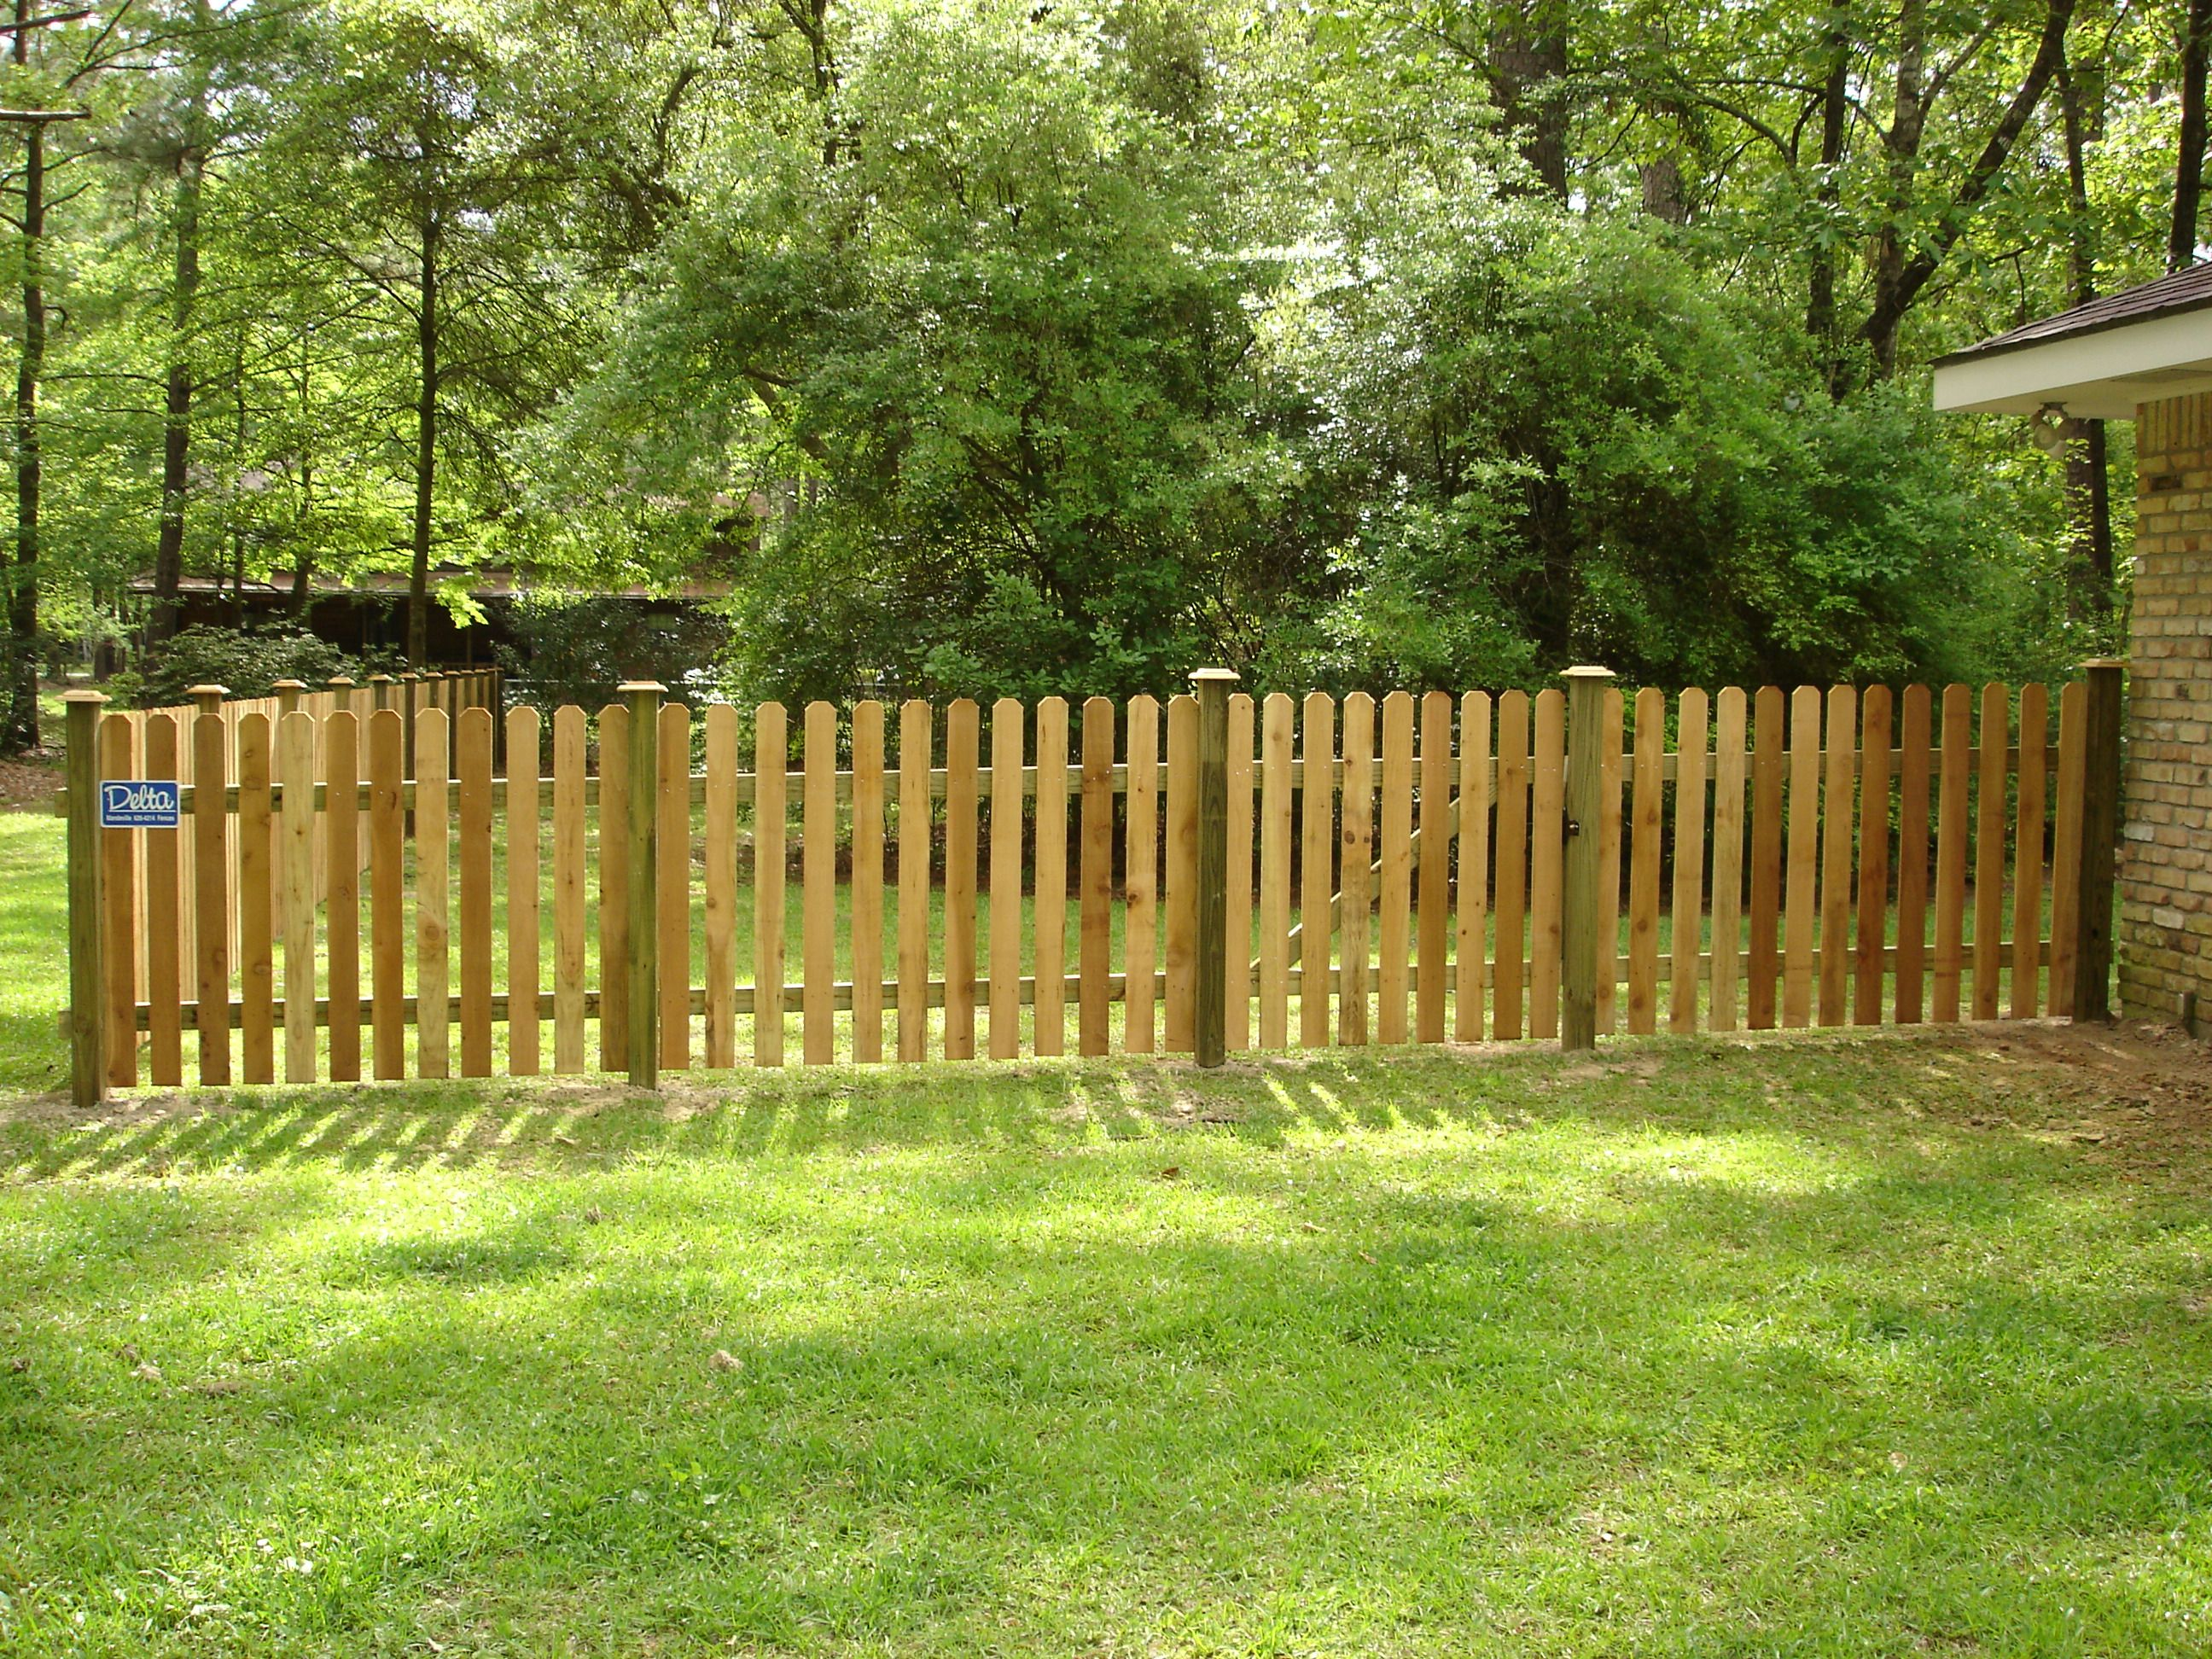 Dog Ear Pickets With Visible Posts With Post Caps Fence Design